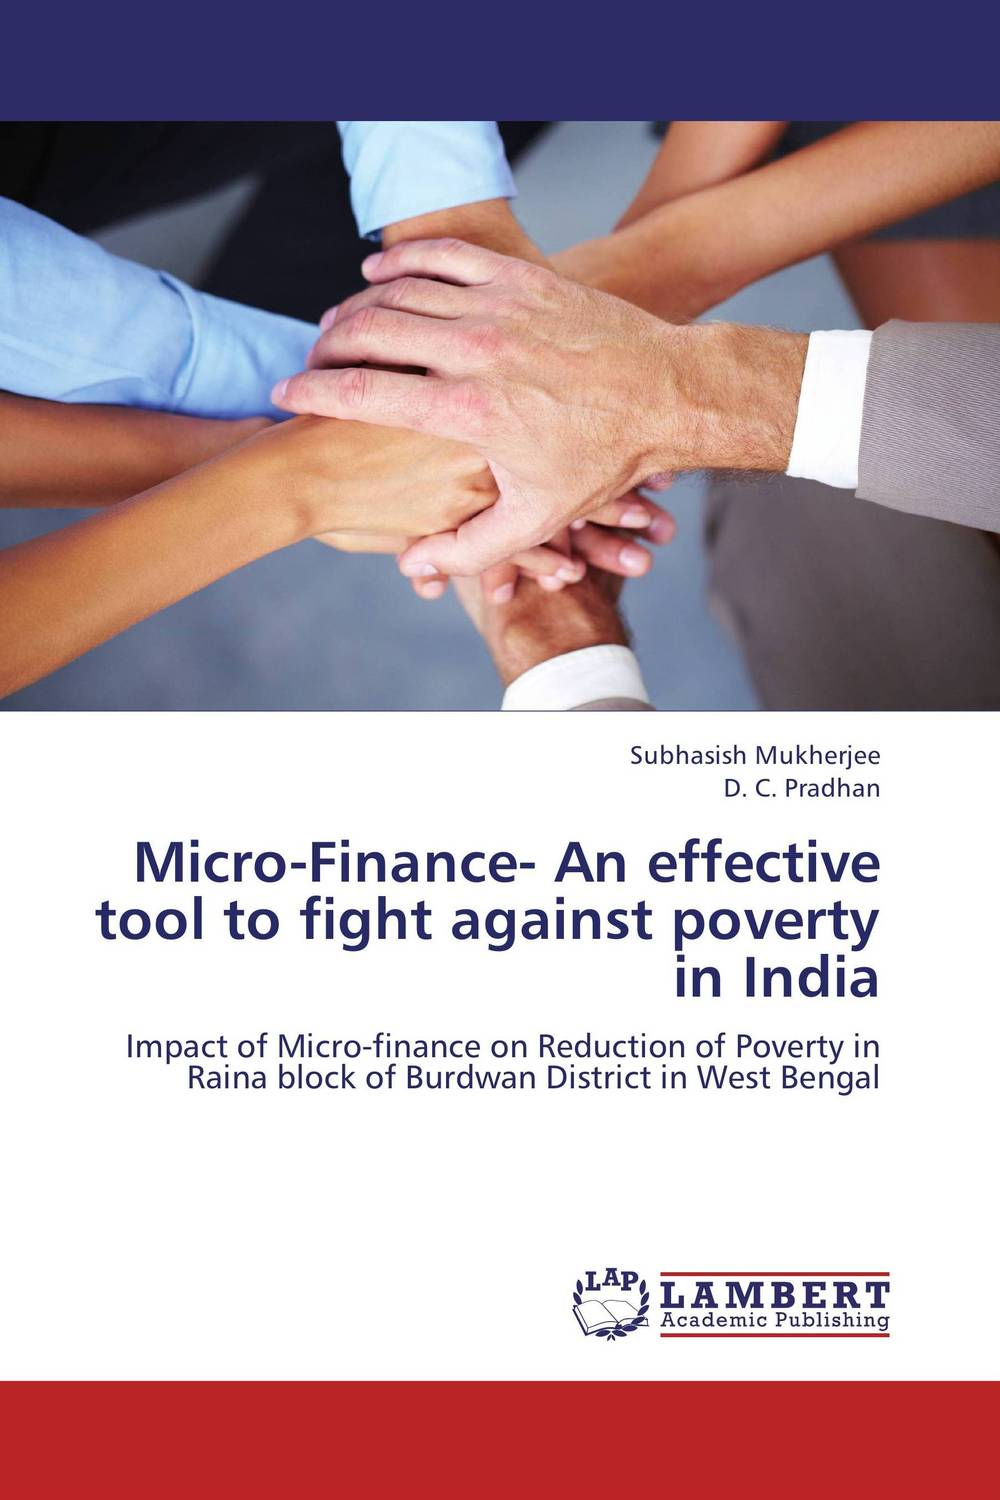 Micro-Finance- An effective tool to fight against poverty in India jaynal ud din ahmed and mohd abdul rashid institutional finance for micro and small entreprises in india